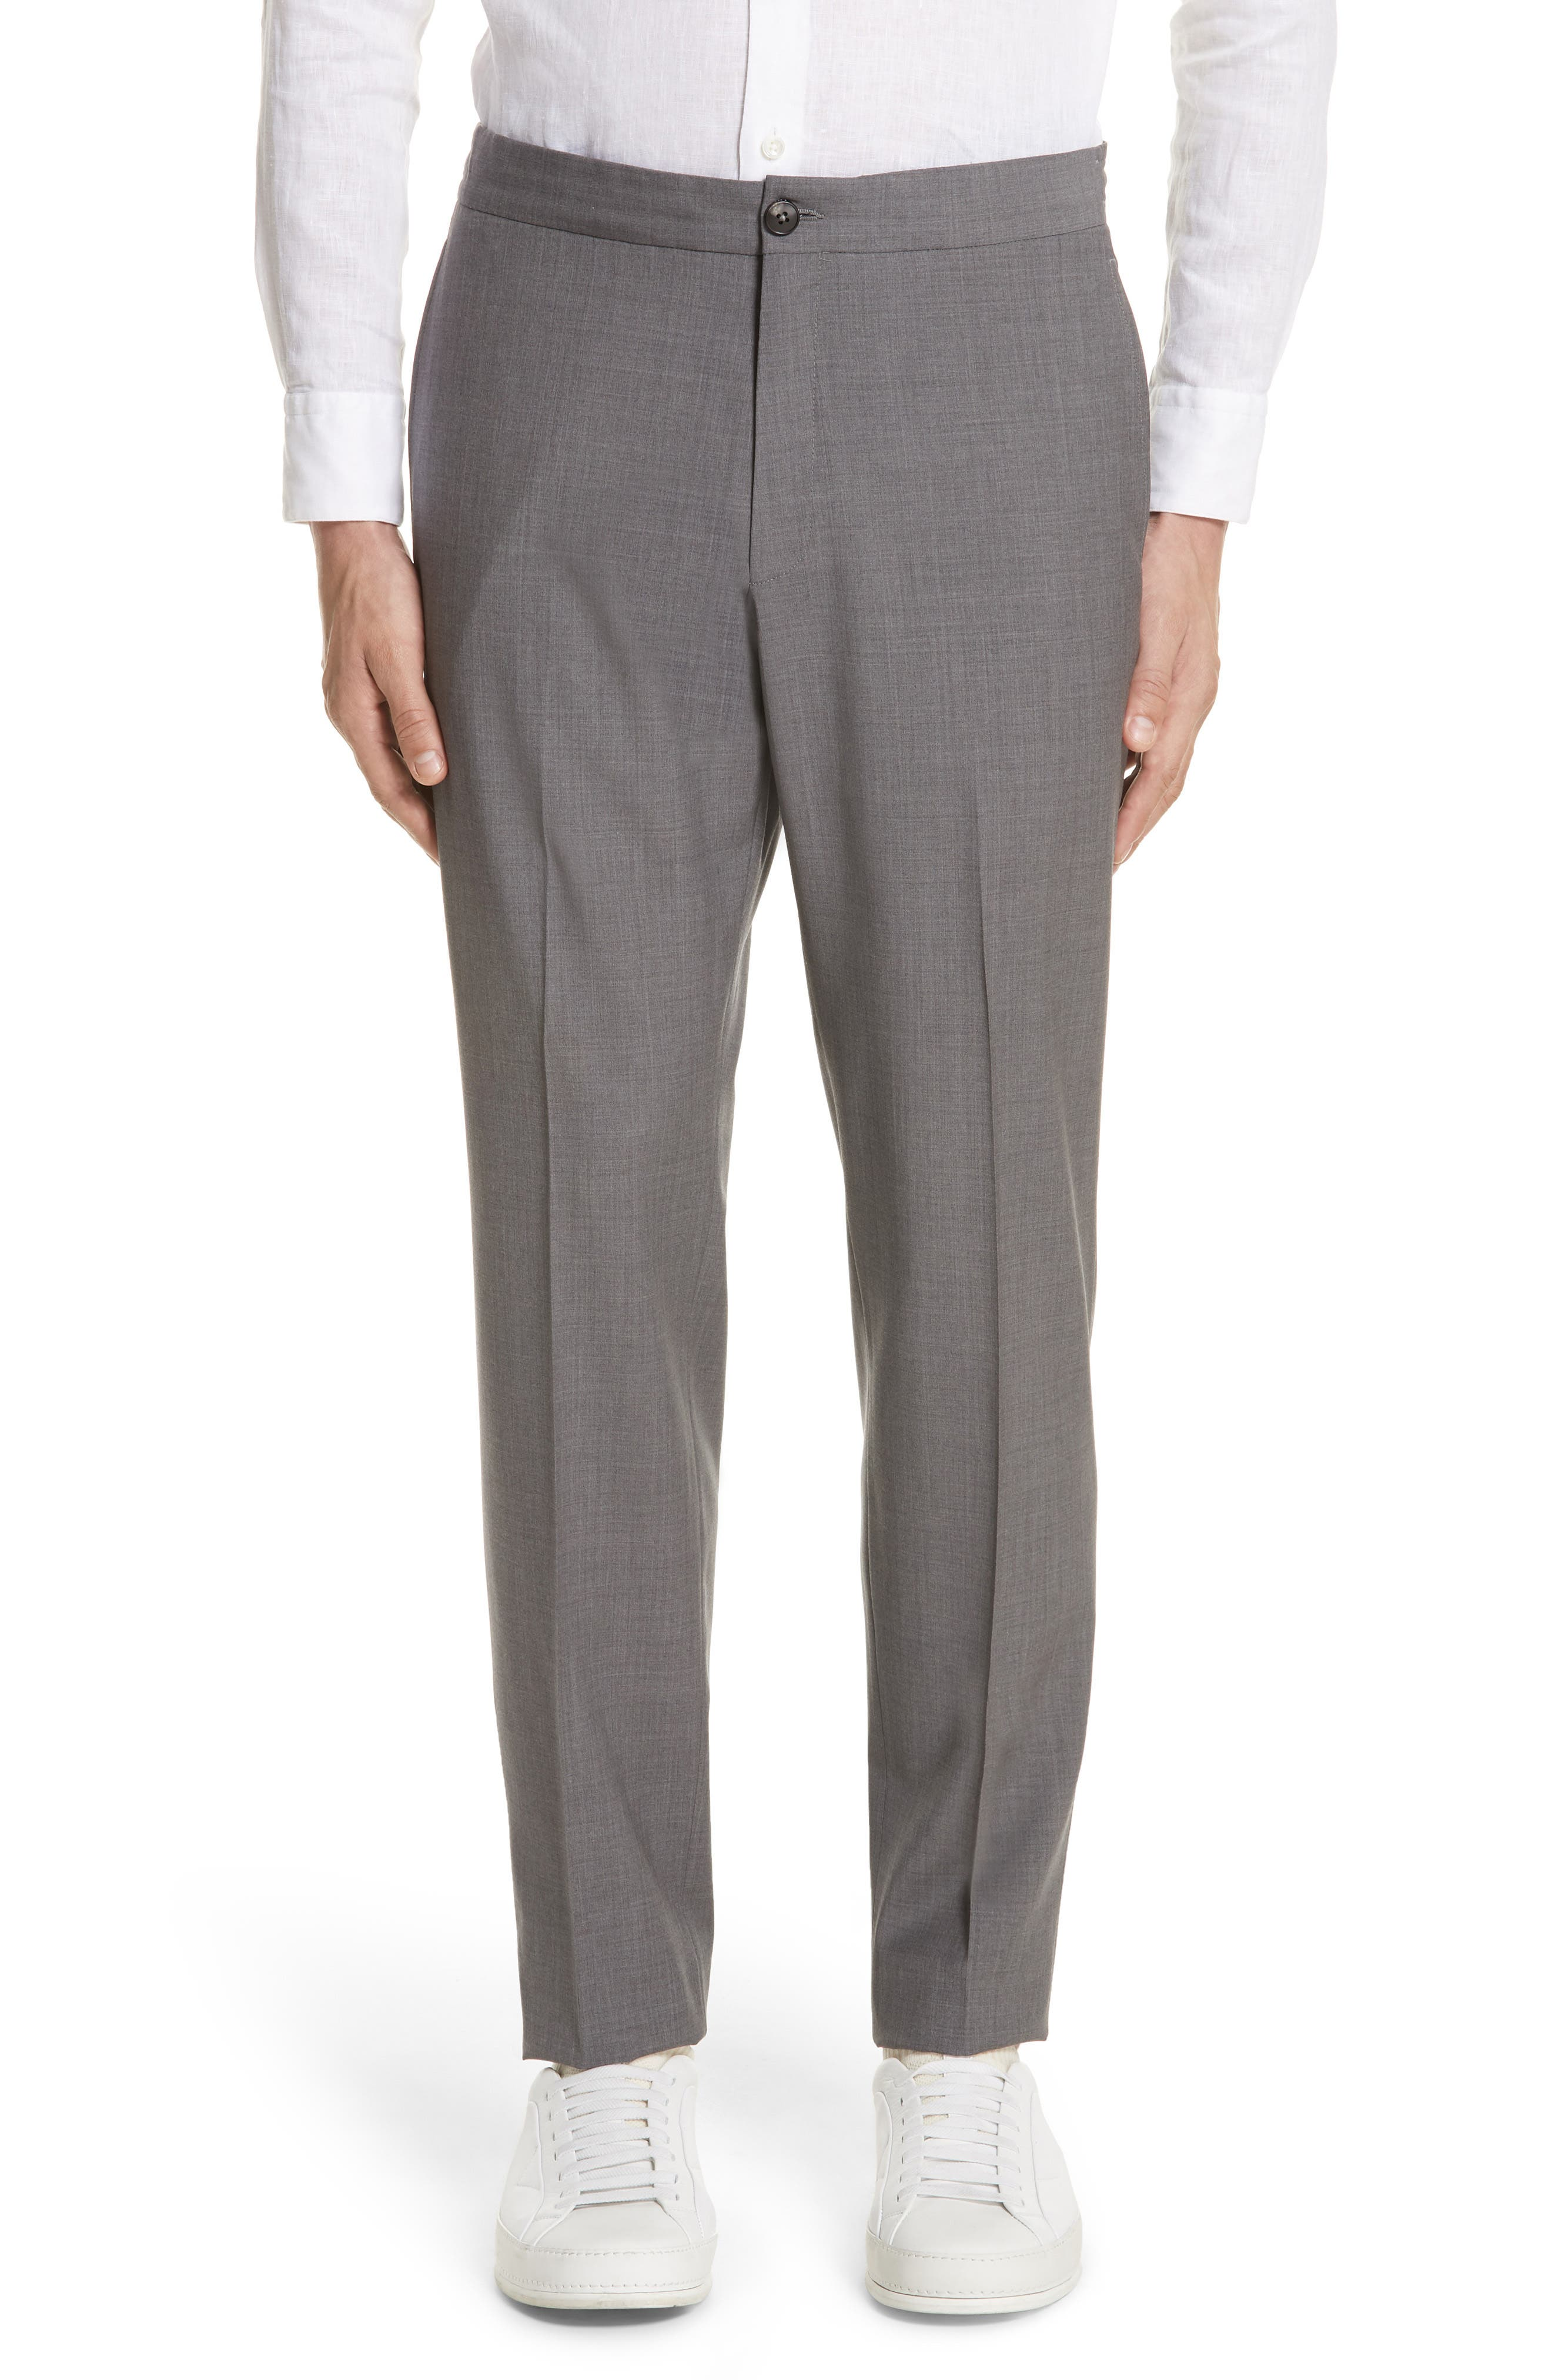 TECHMERINO<sup>™</sup> Wash & Go Trim Fit Solid Wool Suit,                             Alternate thumbnail 5, color,                             Solid Grey